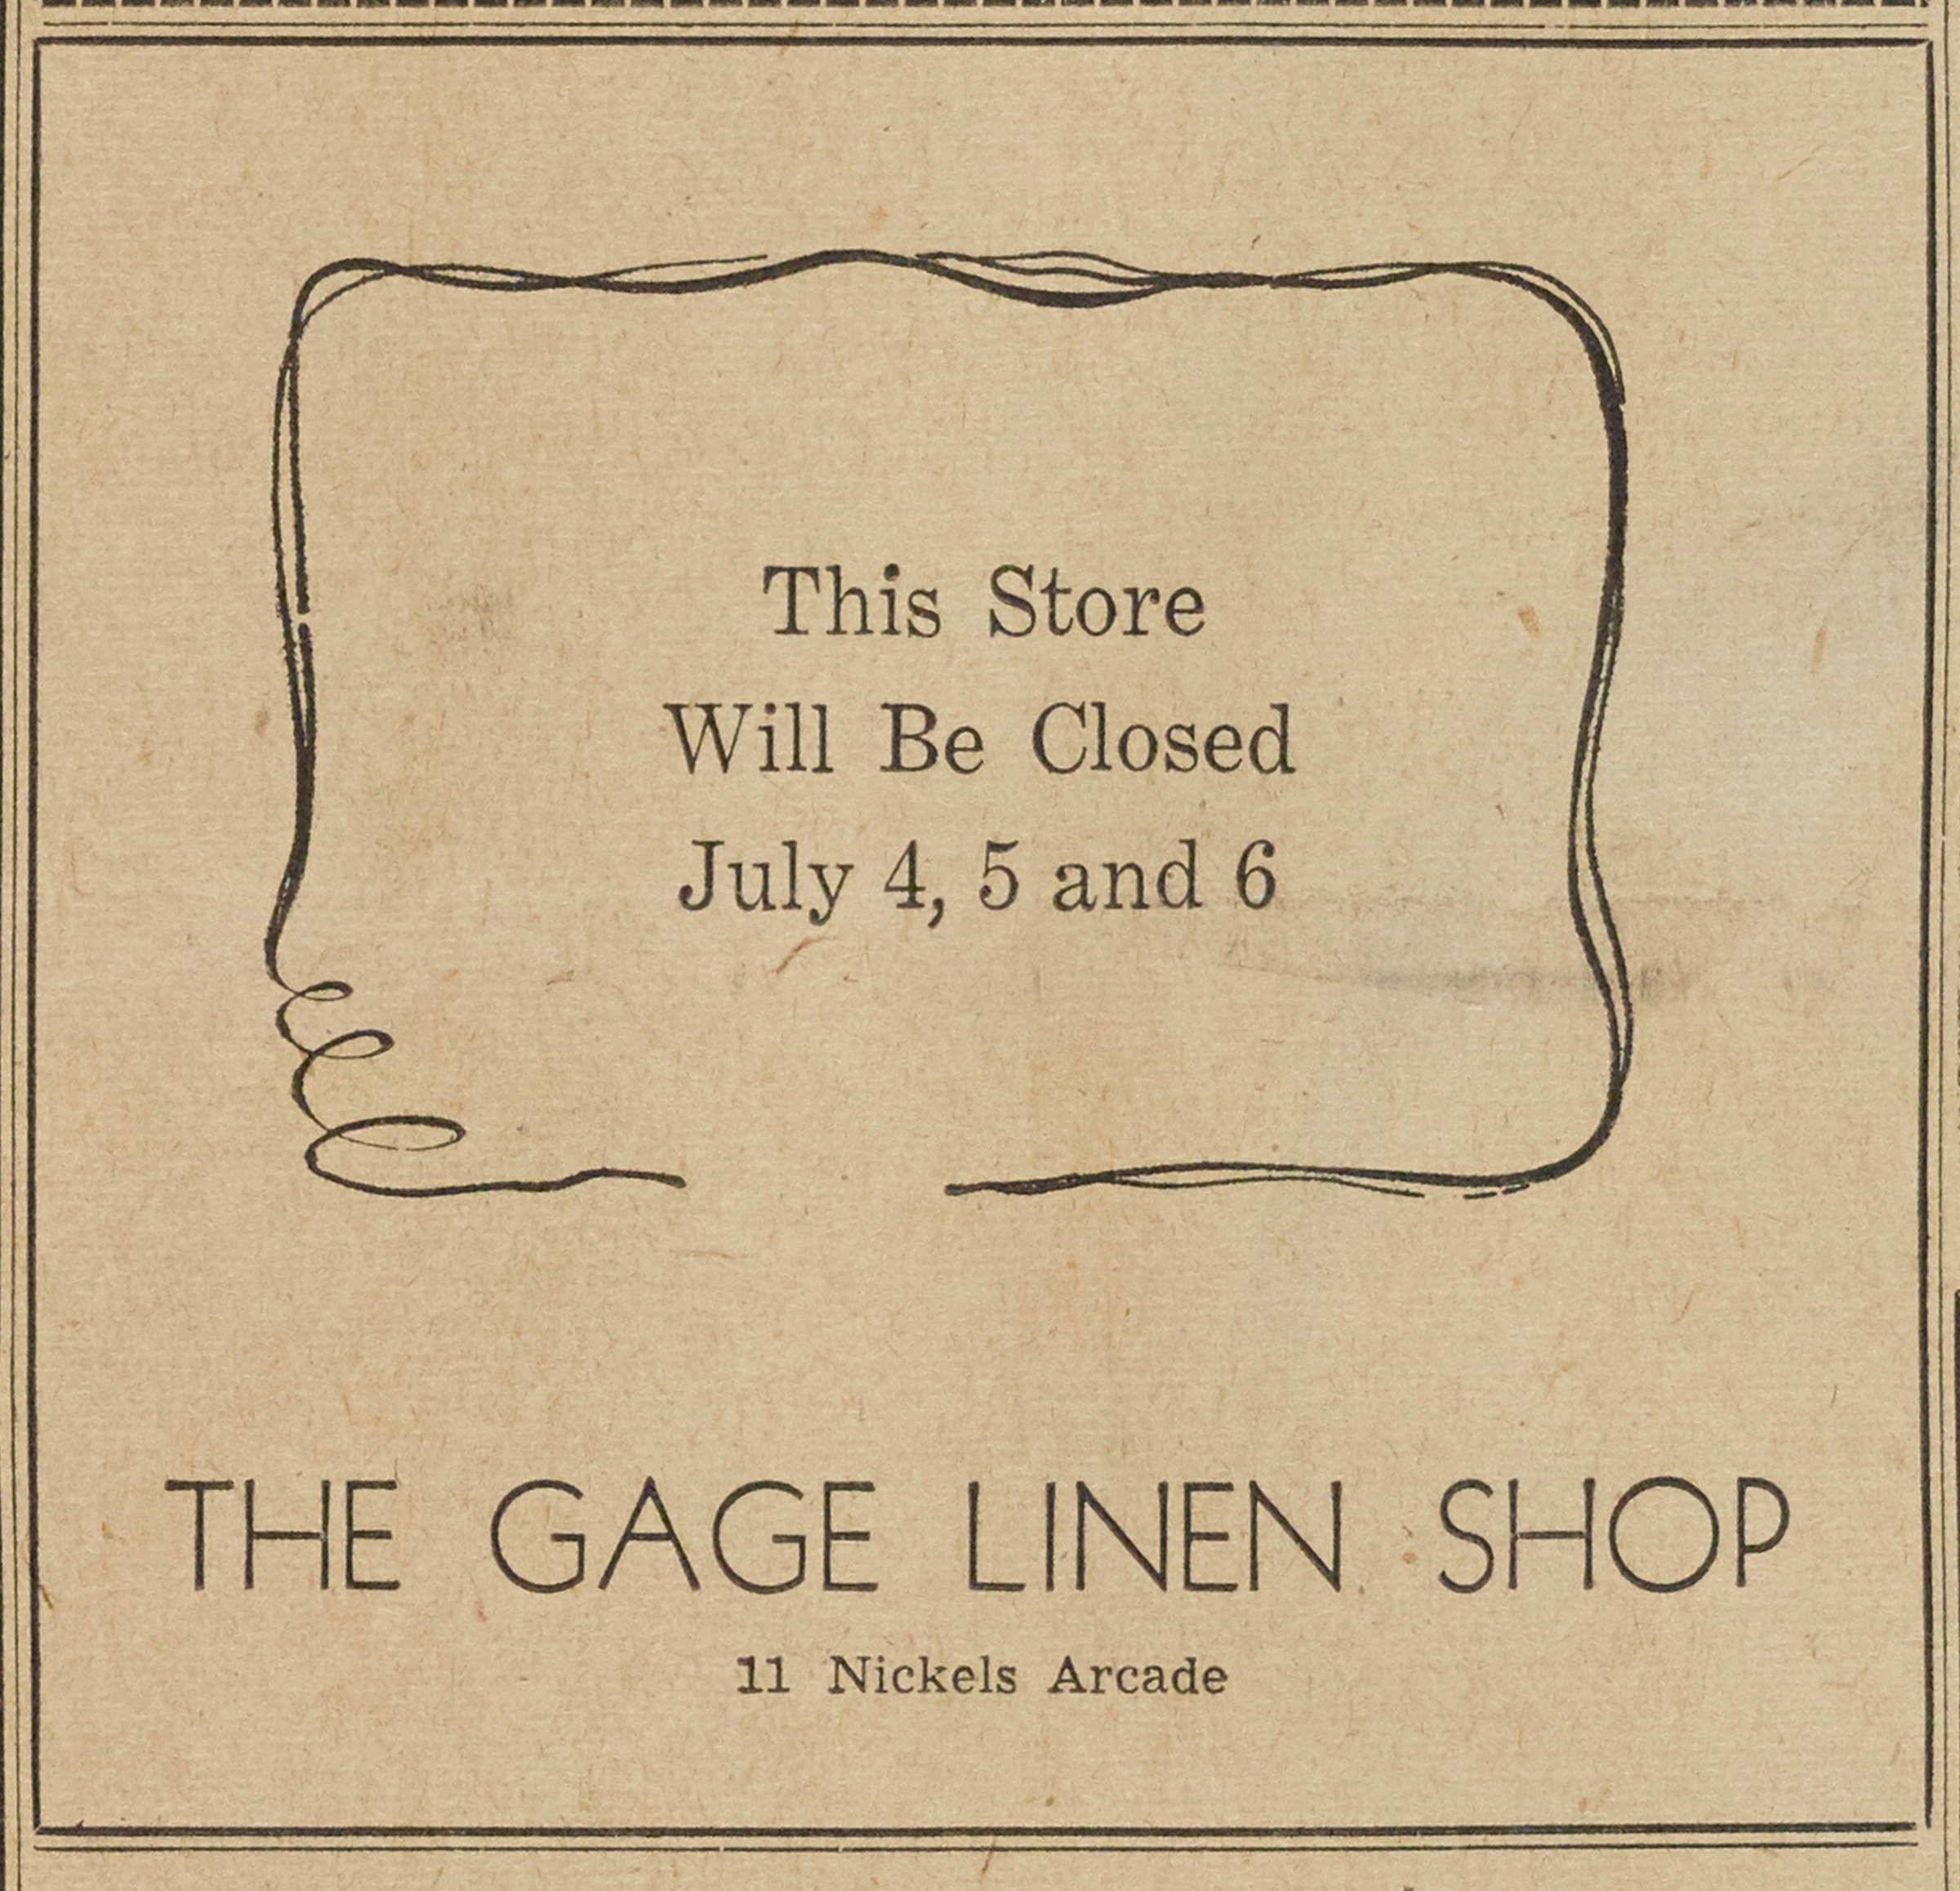 The Gage Linen Shop image